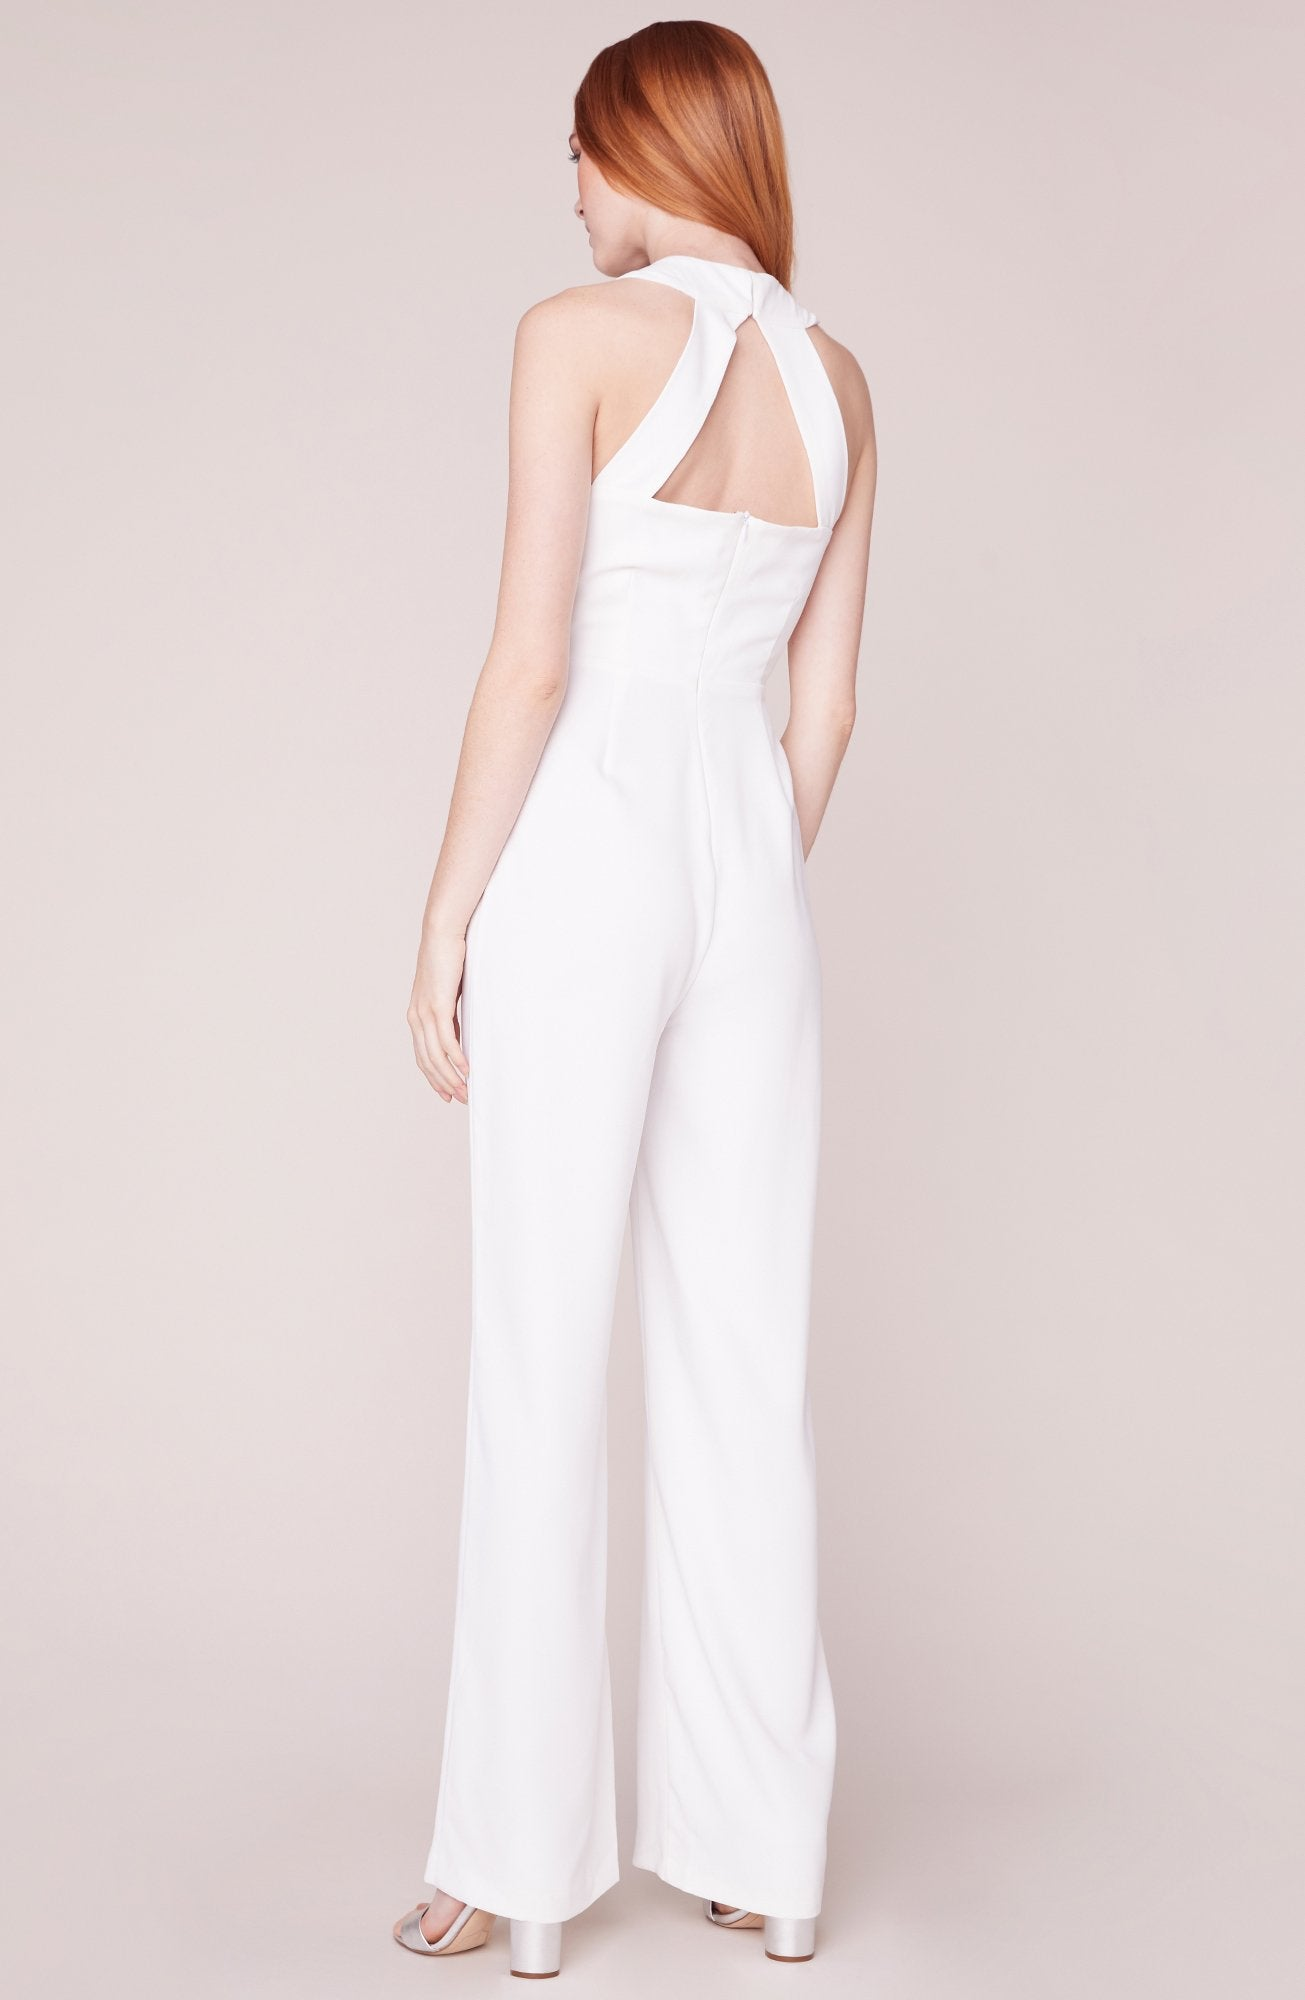 Just One Look Halter Jumpsuit